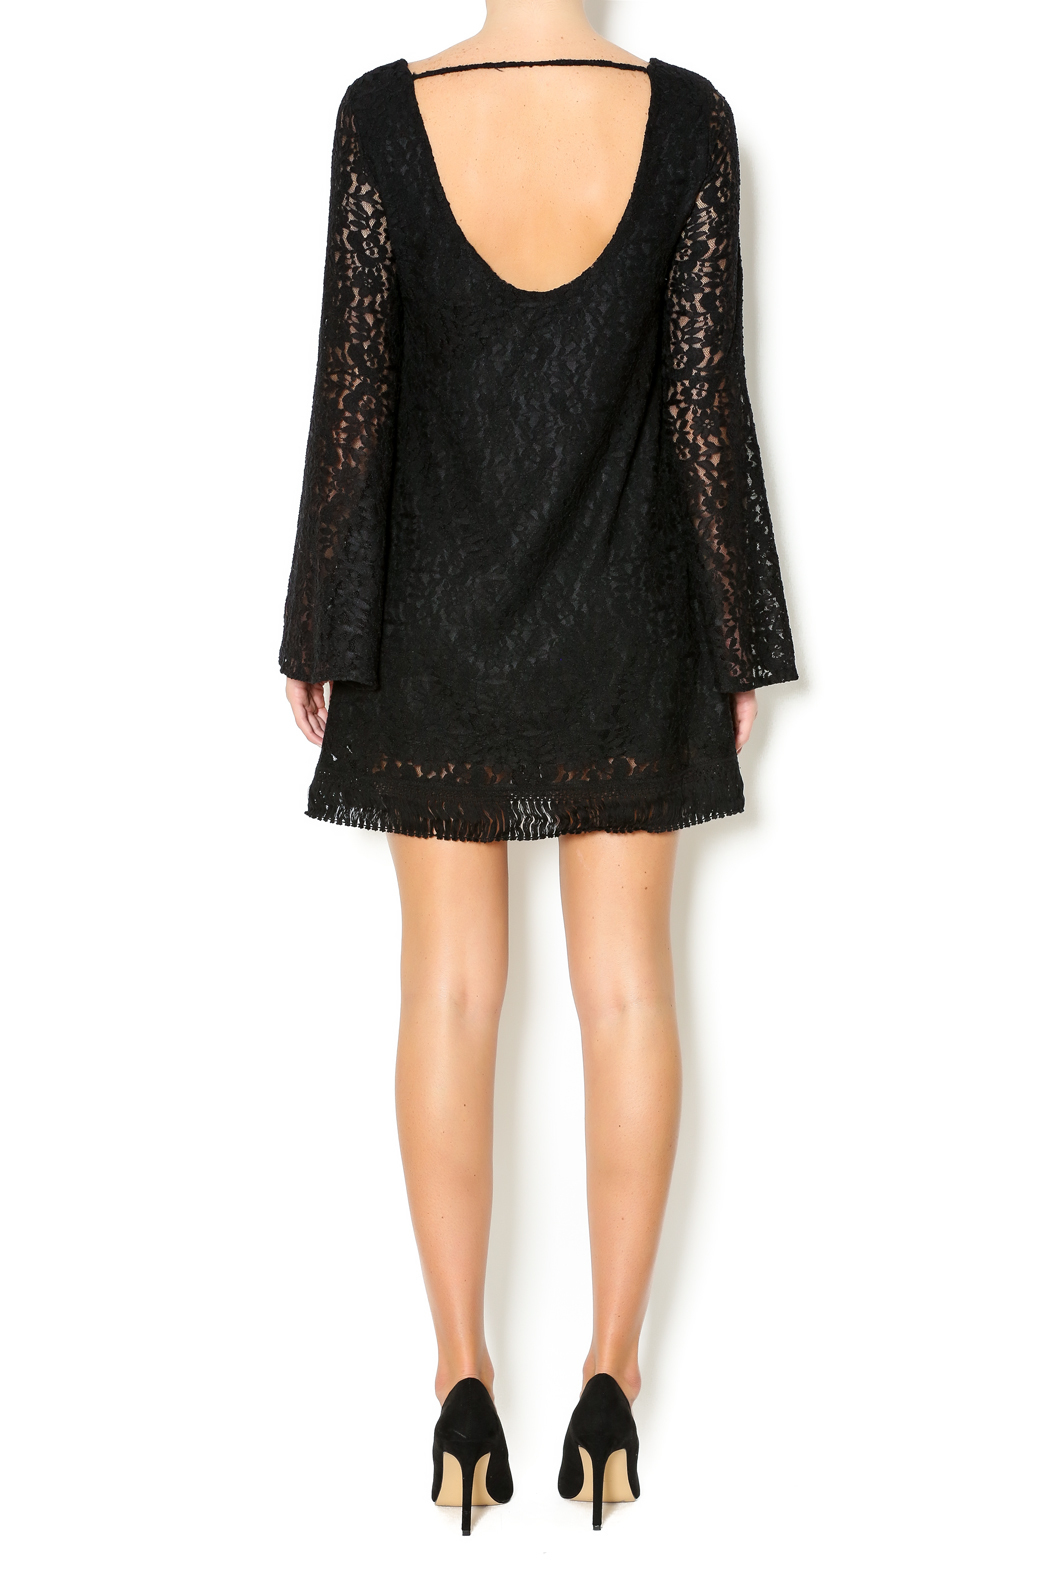 Double Zero A-Line Lace Dress - Side Cropped Image